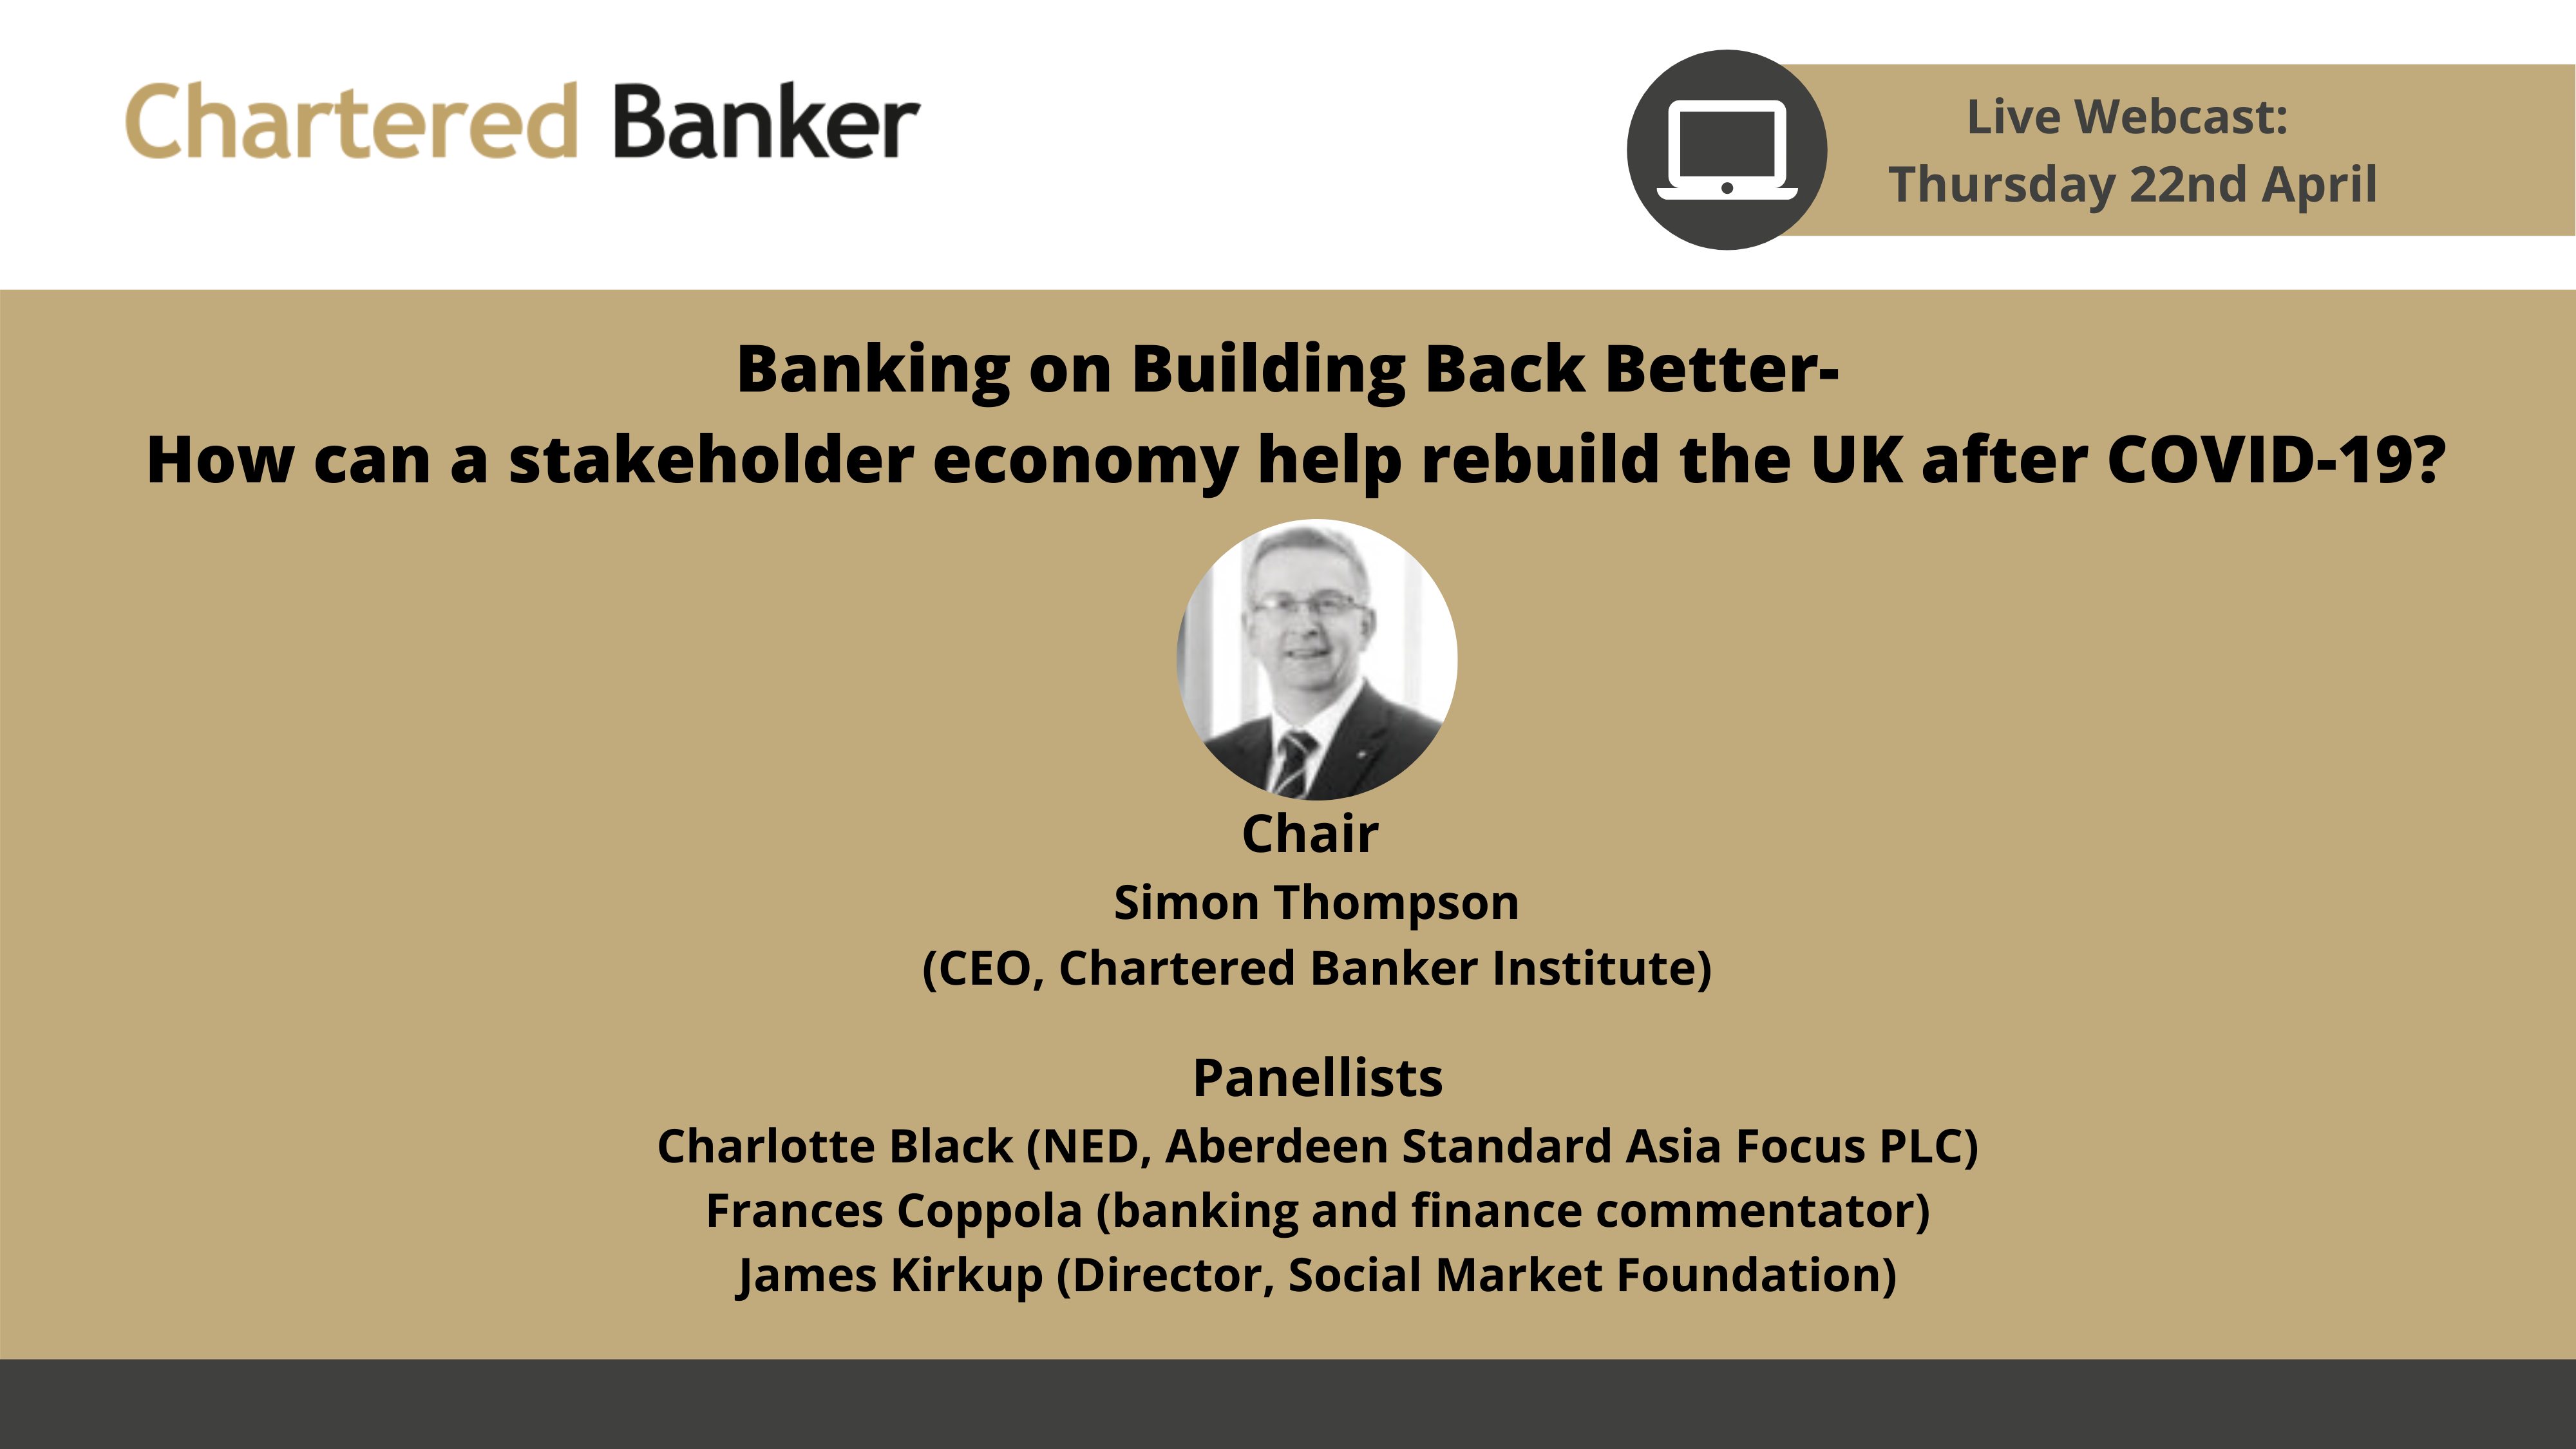 Webcast: Banking on building back better- how can a stakeholder economy help rebuild the UK after COVID-19?